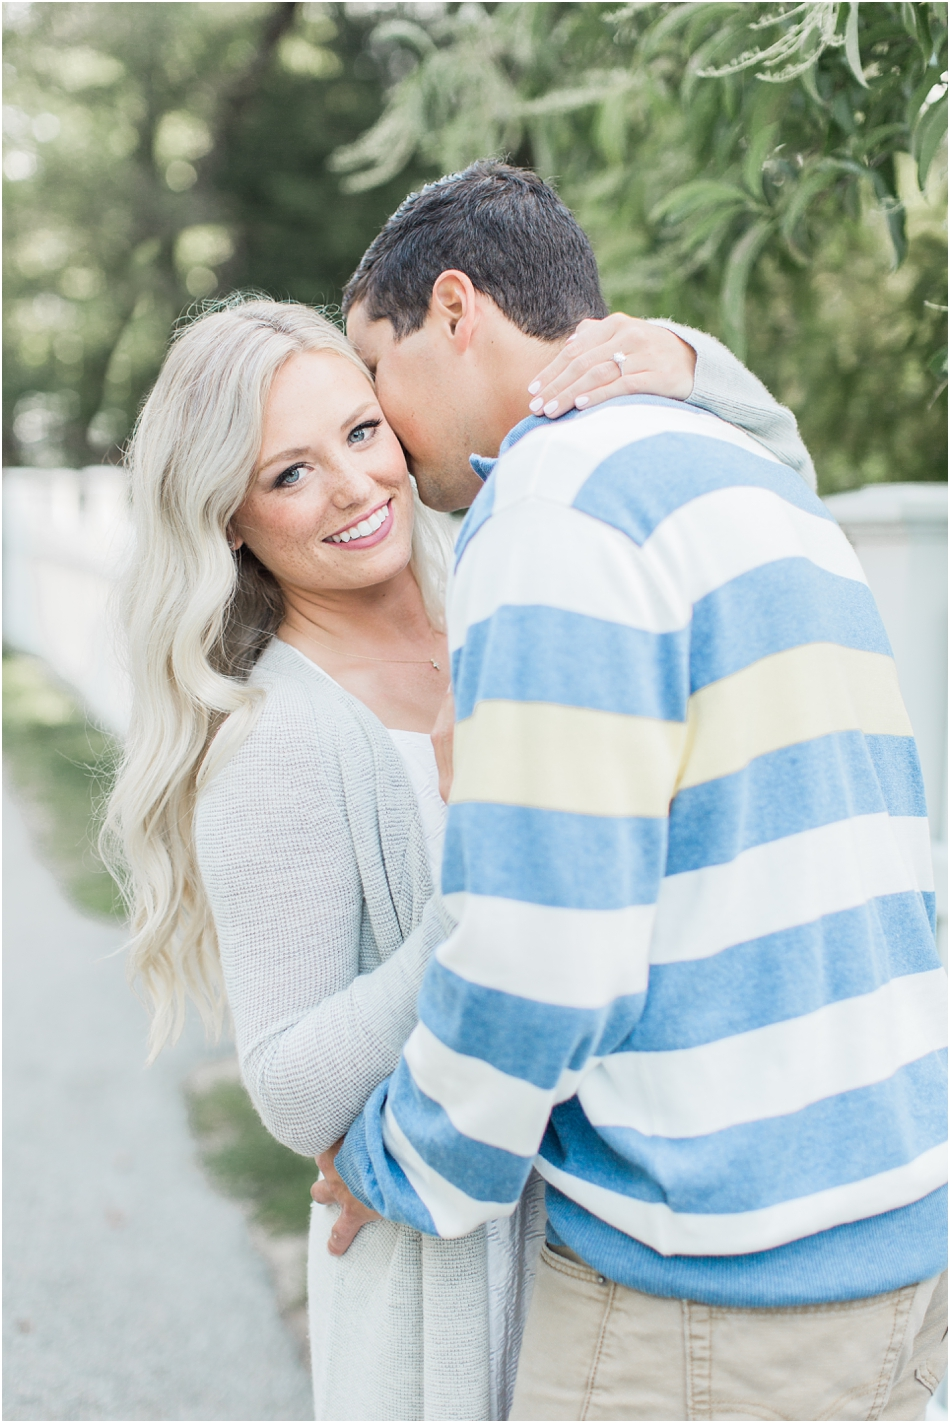 falmouth_beach_engagement_white_picket_fence_cape_cod_boston_new_england_wedding_photographer_Meredith_Jane_Photography_photo_2482.jpg